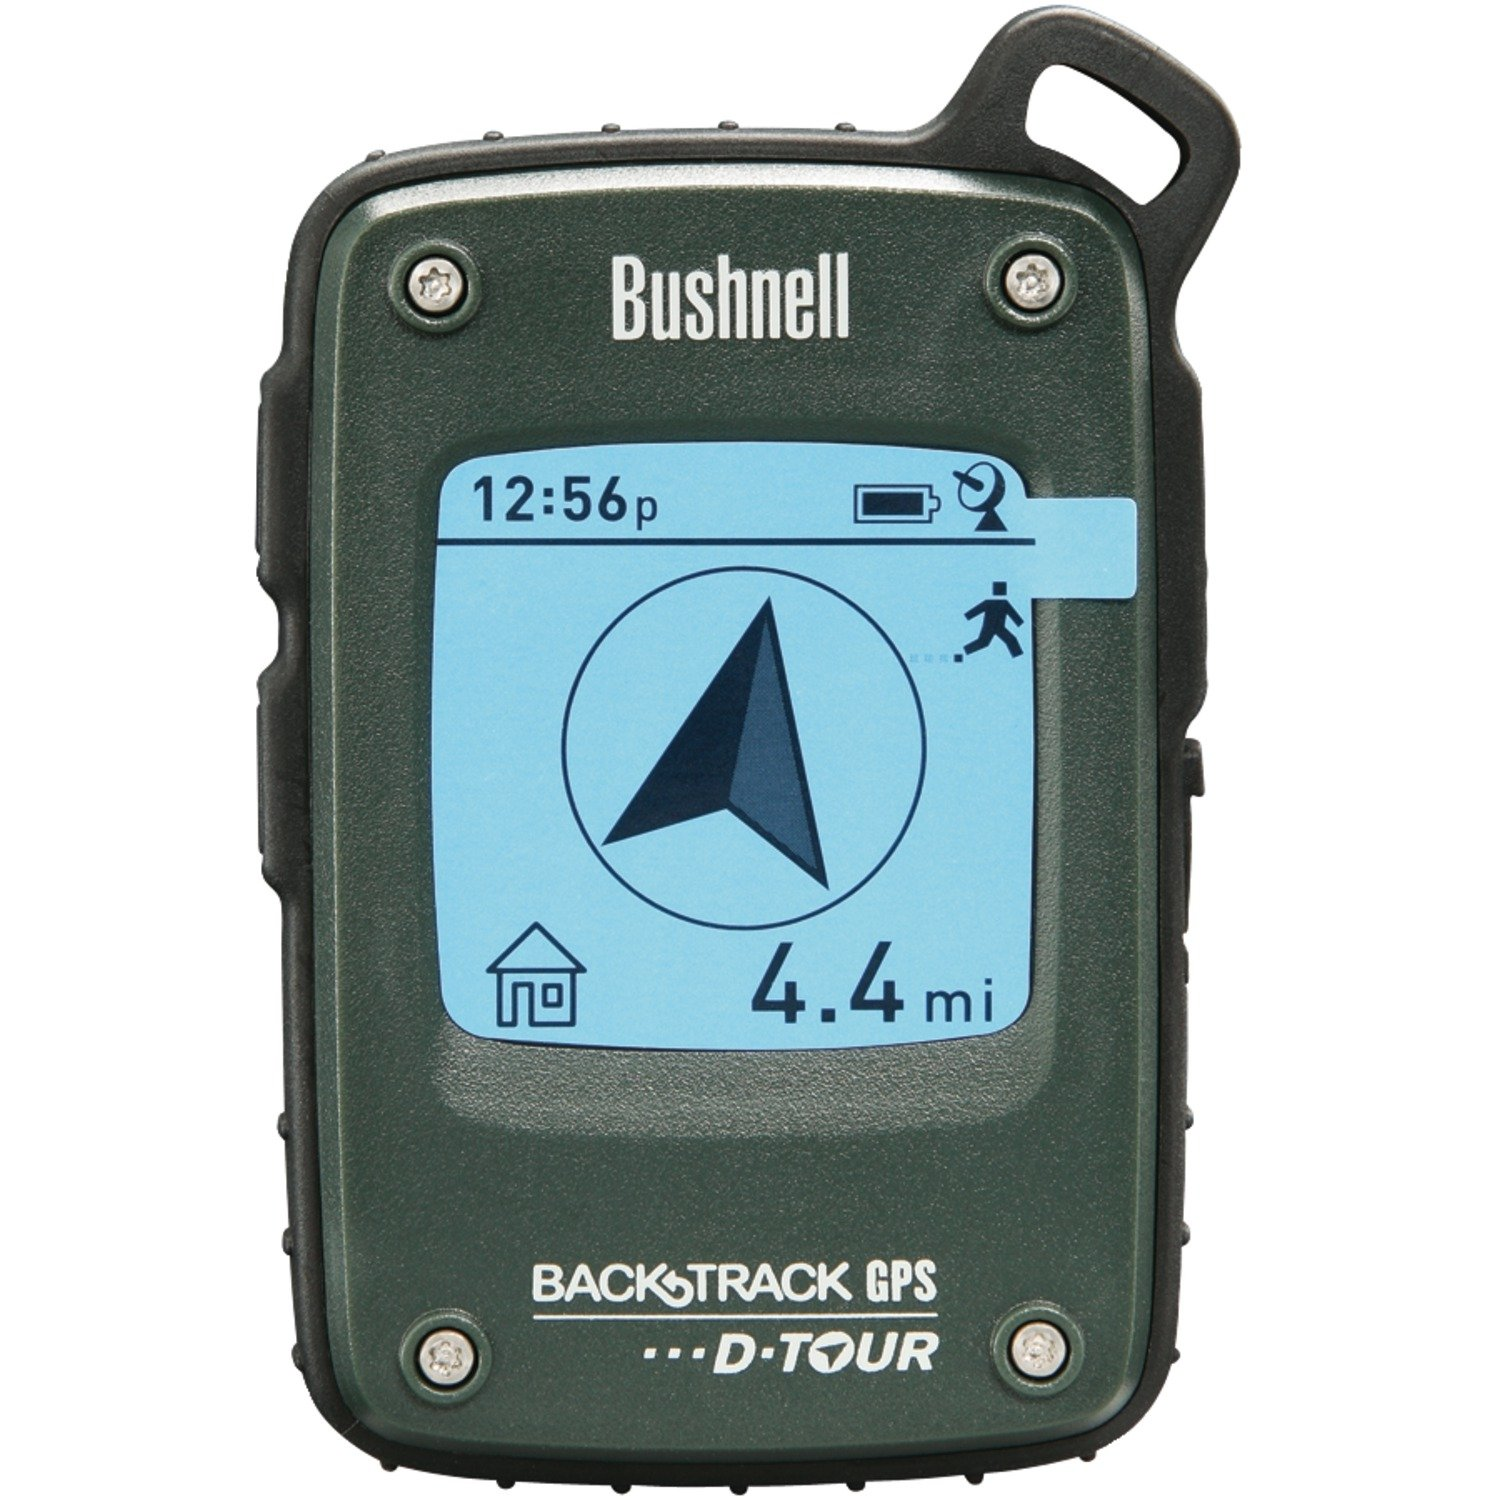 Bushnell BackTrack D-Tour Personal GPS, Green: Amazon.ca: Sports & Outdoors